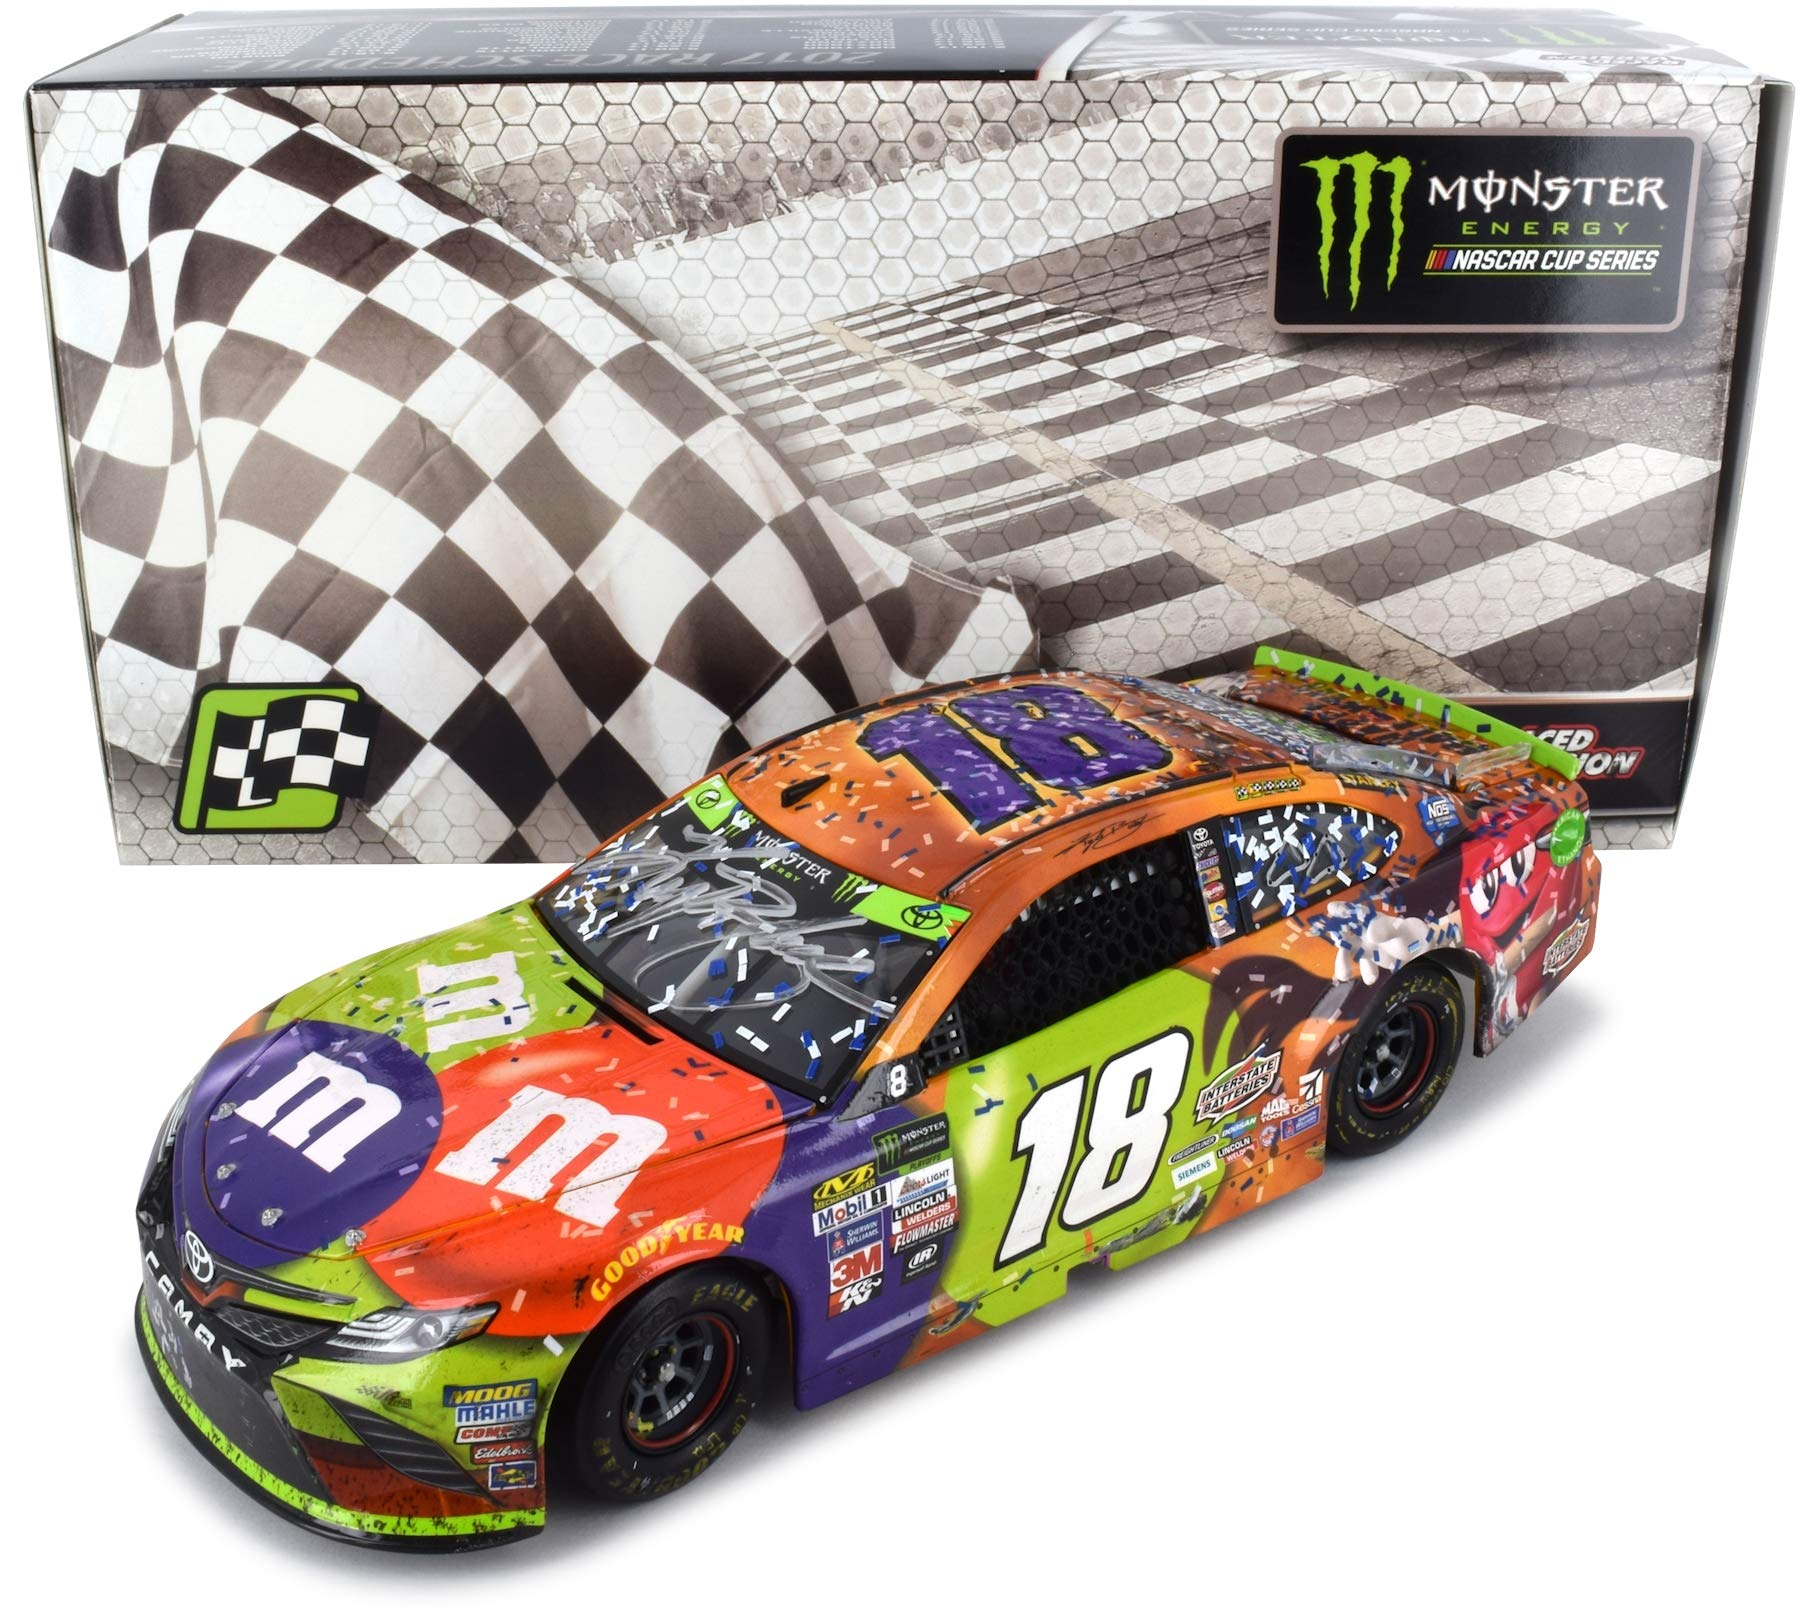 Lionel Racing Autographed Kyle Busch 2017 Martinsville Race Win NASCAR Diecast Car 1:24